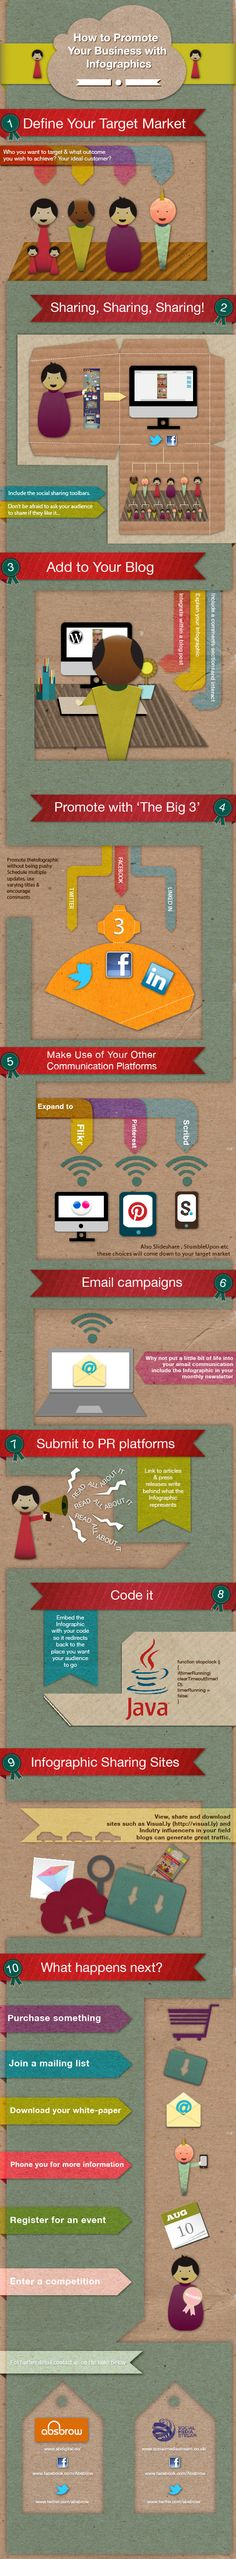 This is a how to guide to using infographics to promote your business using modern distribution channels. Infographic courtesy of Social Media Stream. More Interesting Content5 Tools to Create Your Own InfographicsWhy Use Infographics? What Makes an Effective Infographic? [Infographic]Running Down Your Online Marketing Dream with Great InfographicsAttracting Customers with Infographic Marketing [Infographic]The Infographic Life...[ReadMore]